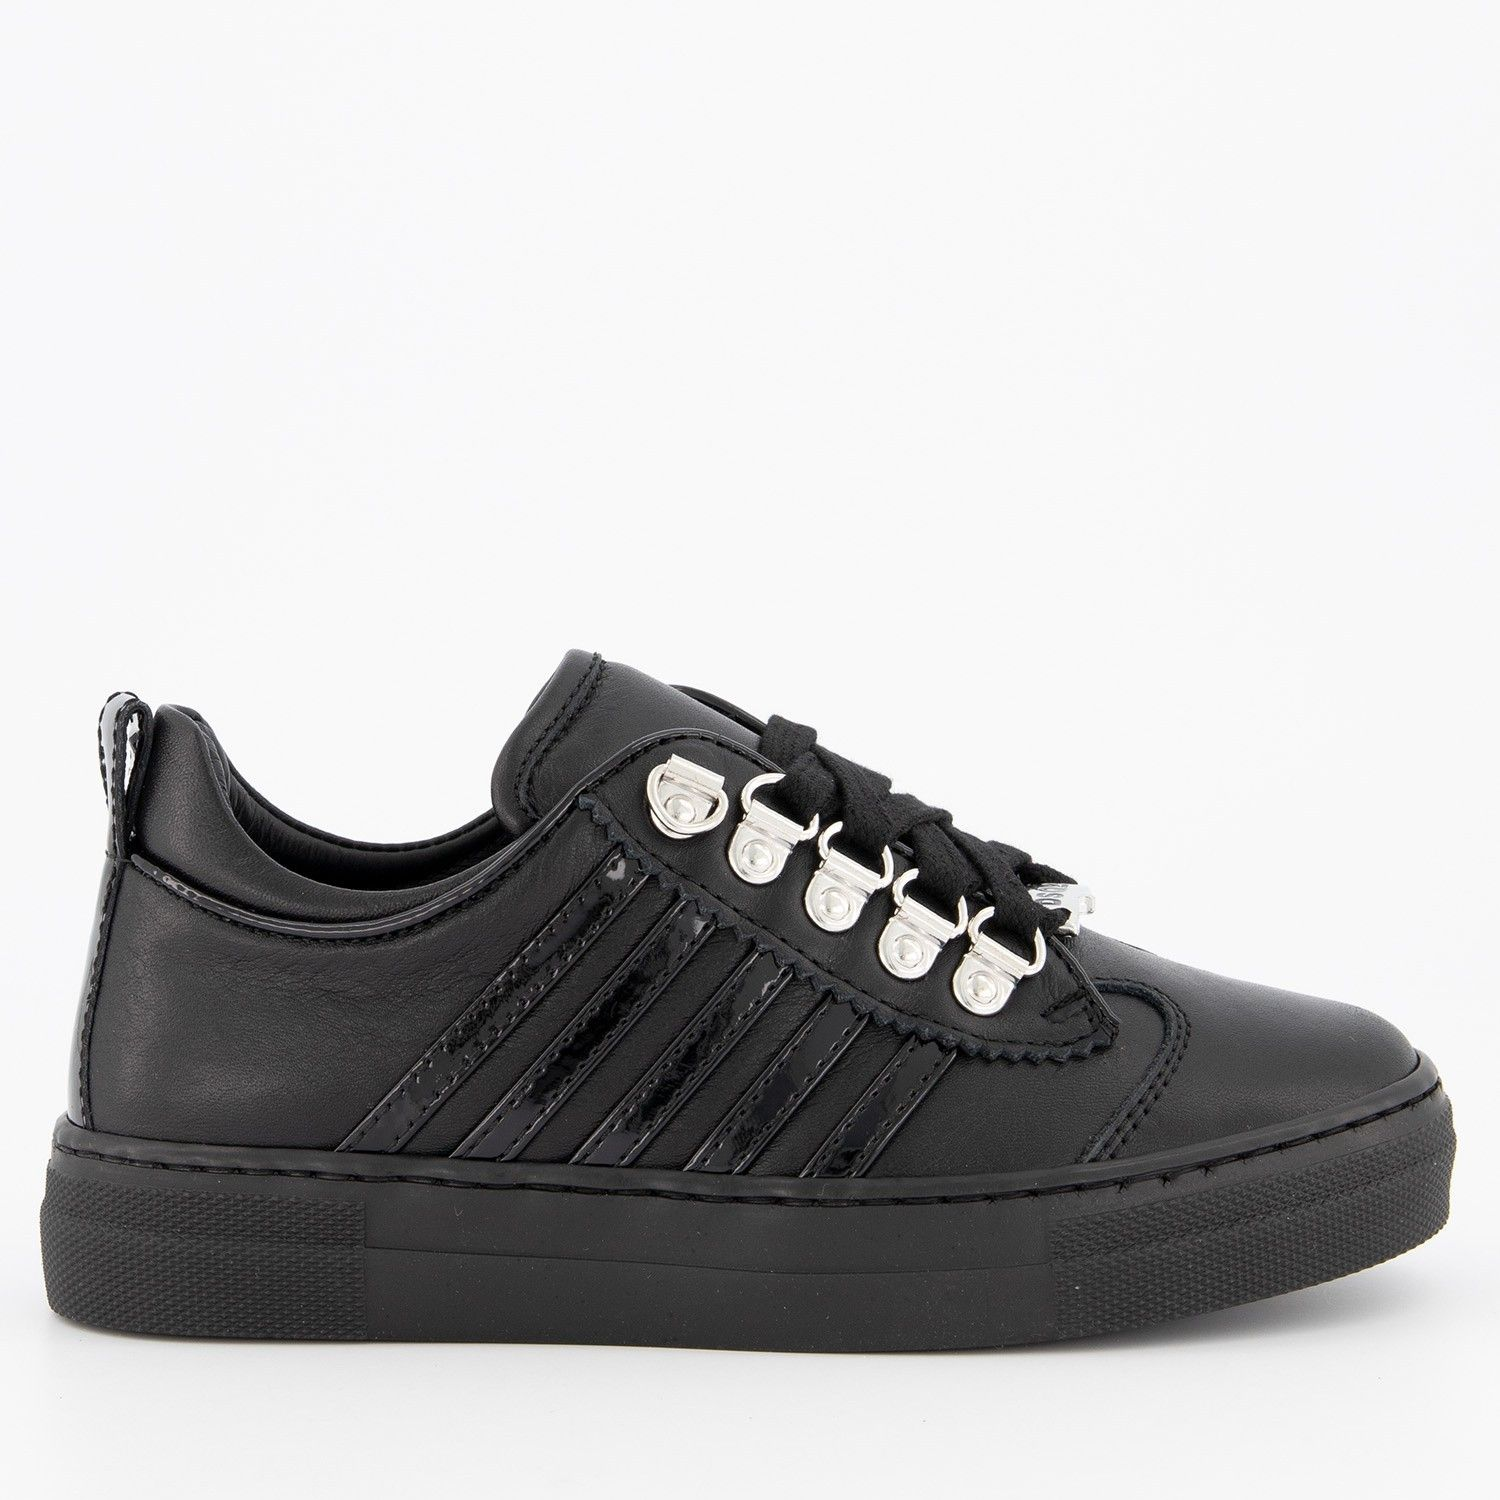 Picture of Dsquared2 62290 kids sneakers black